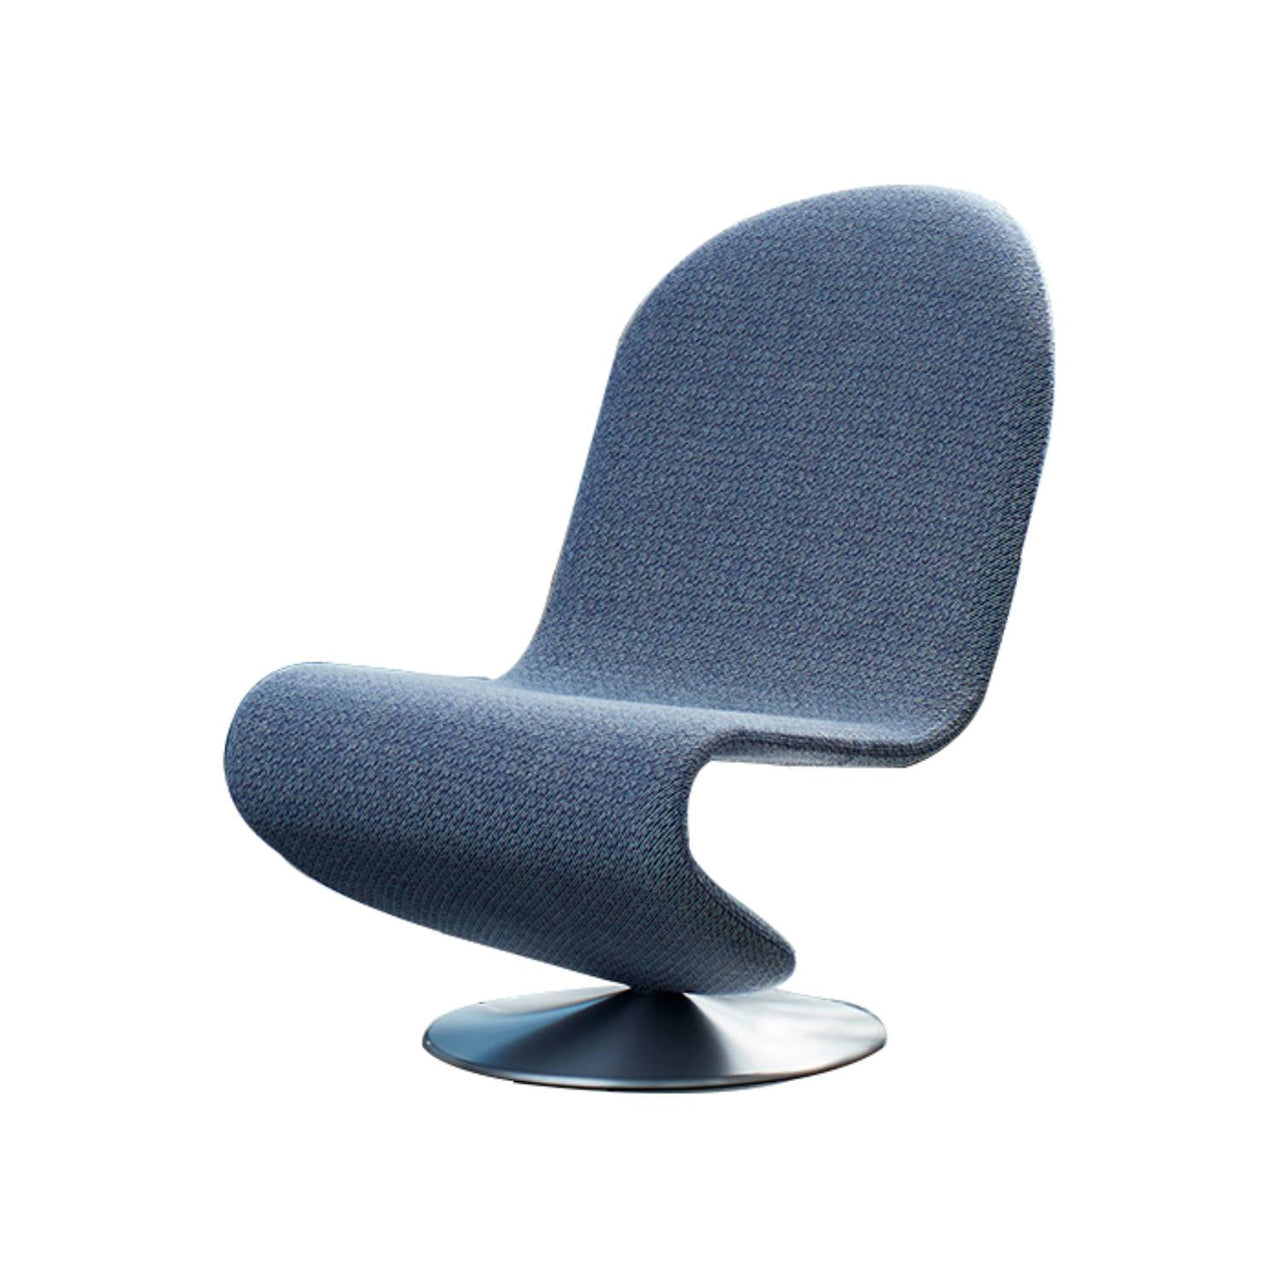 System 1-2-3 Lounge Chair: Standard